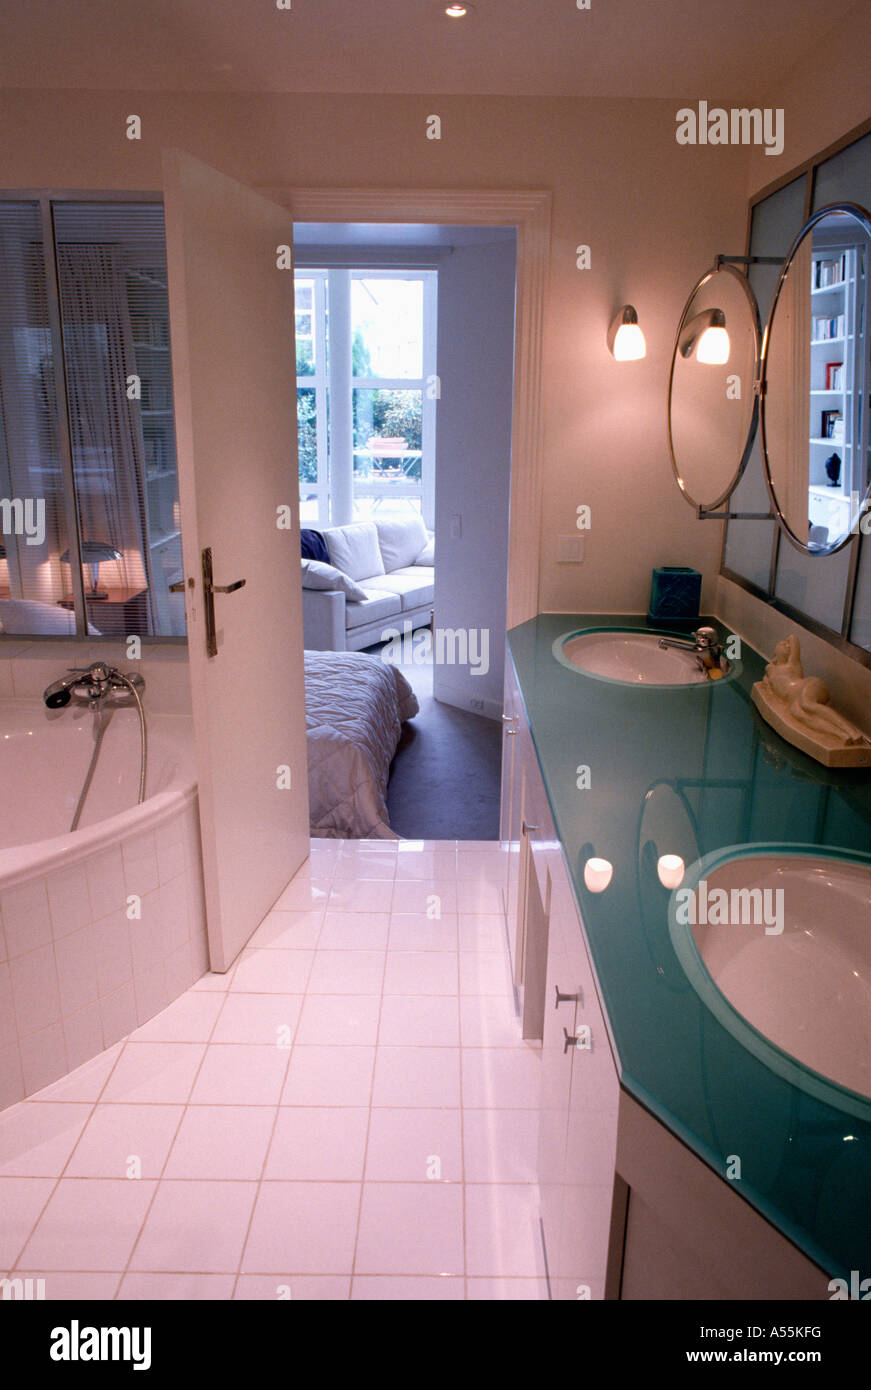 Double basin in glass vanity unit in modern ensuite bathroom with white tiled floor - Stock Image